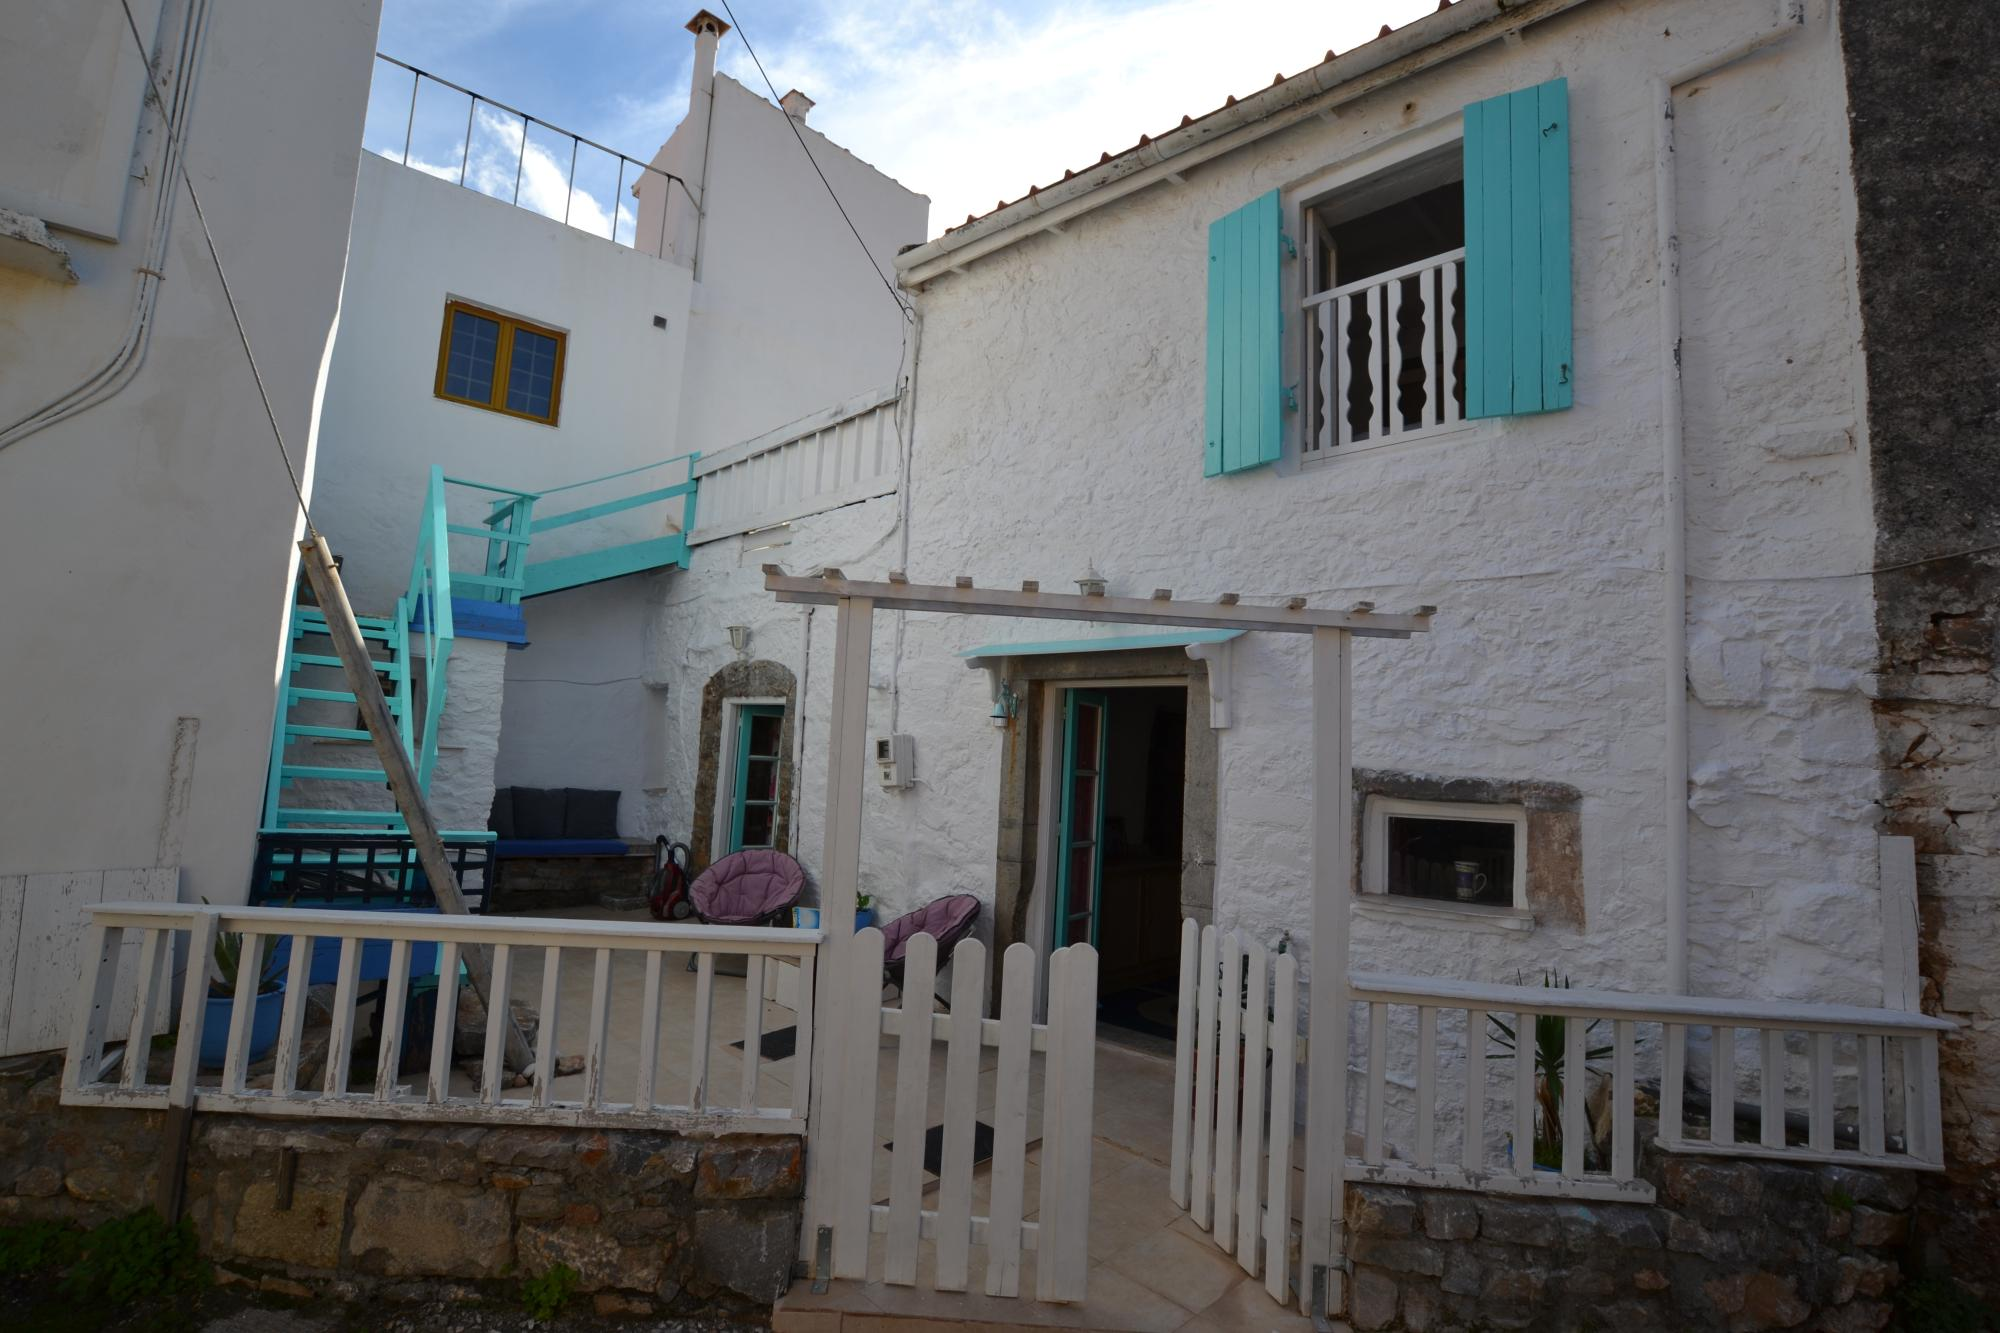 2 bedroom renovated stone house with terrace and front yard.